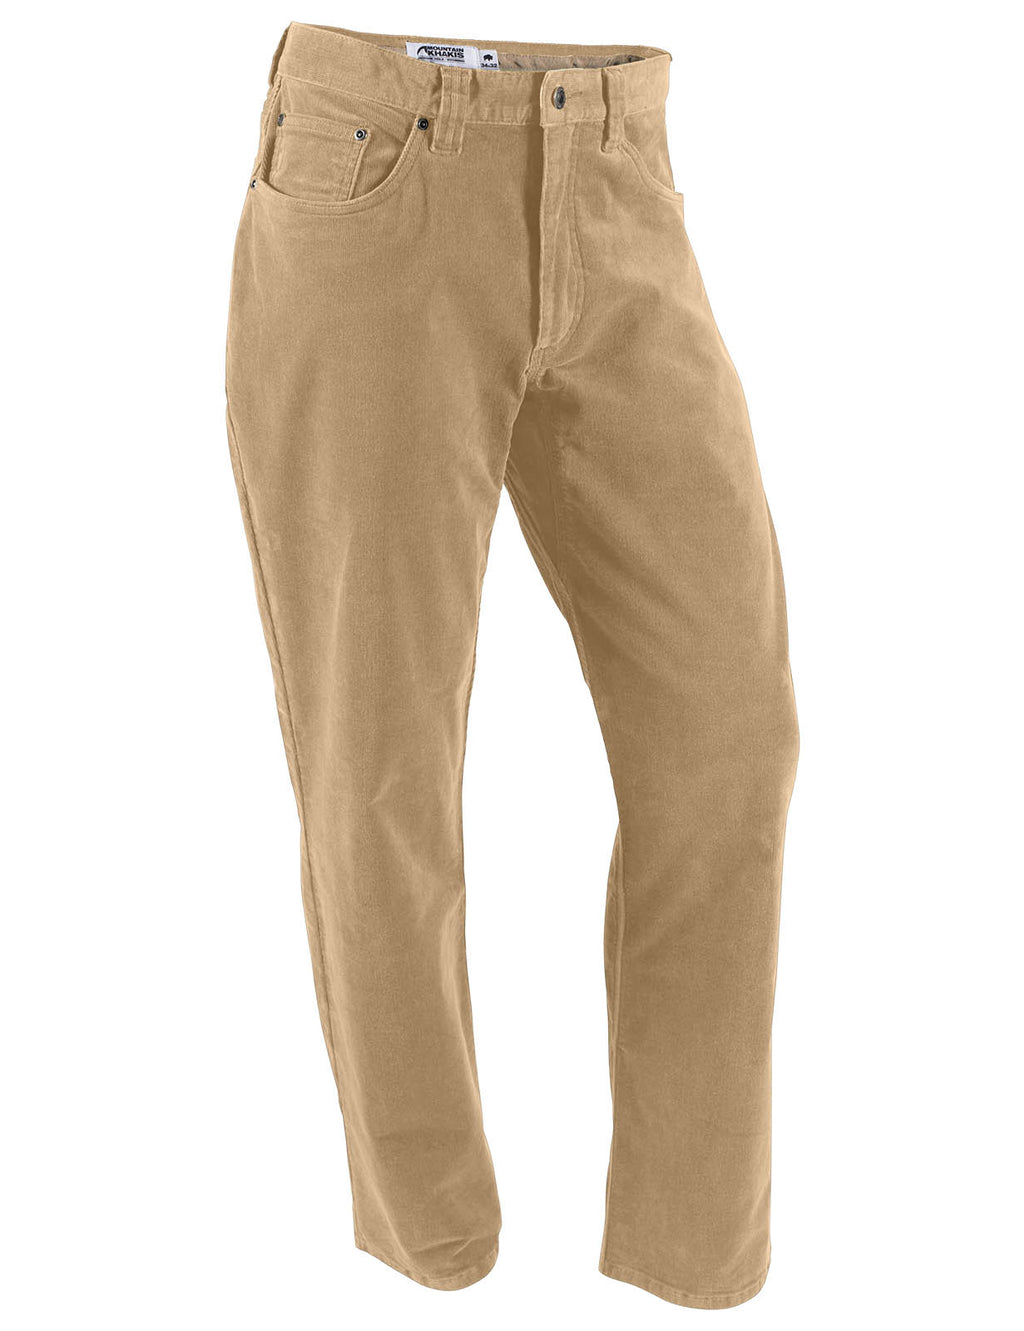 Men's Canyon Cord Pant | Classic Fit / Retro Khaki